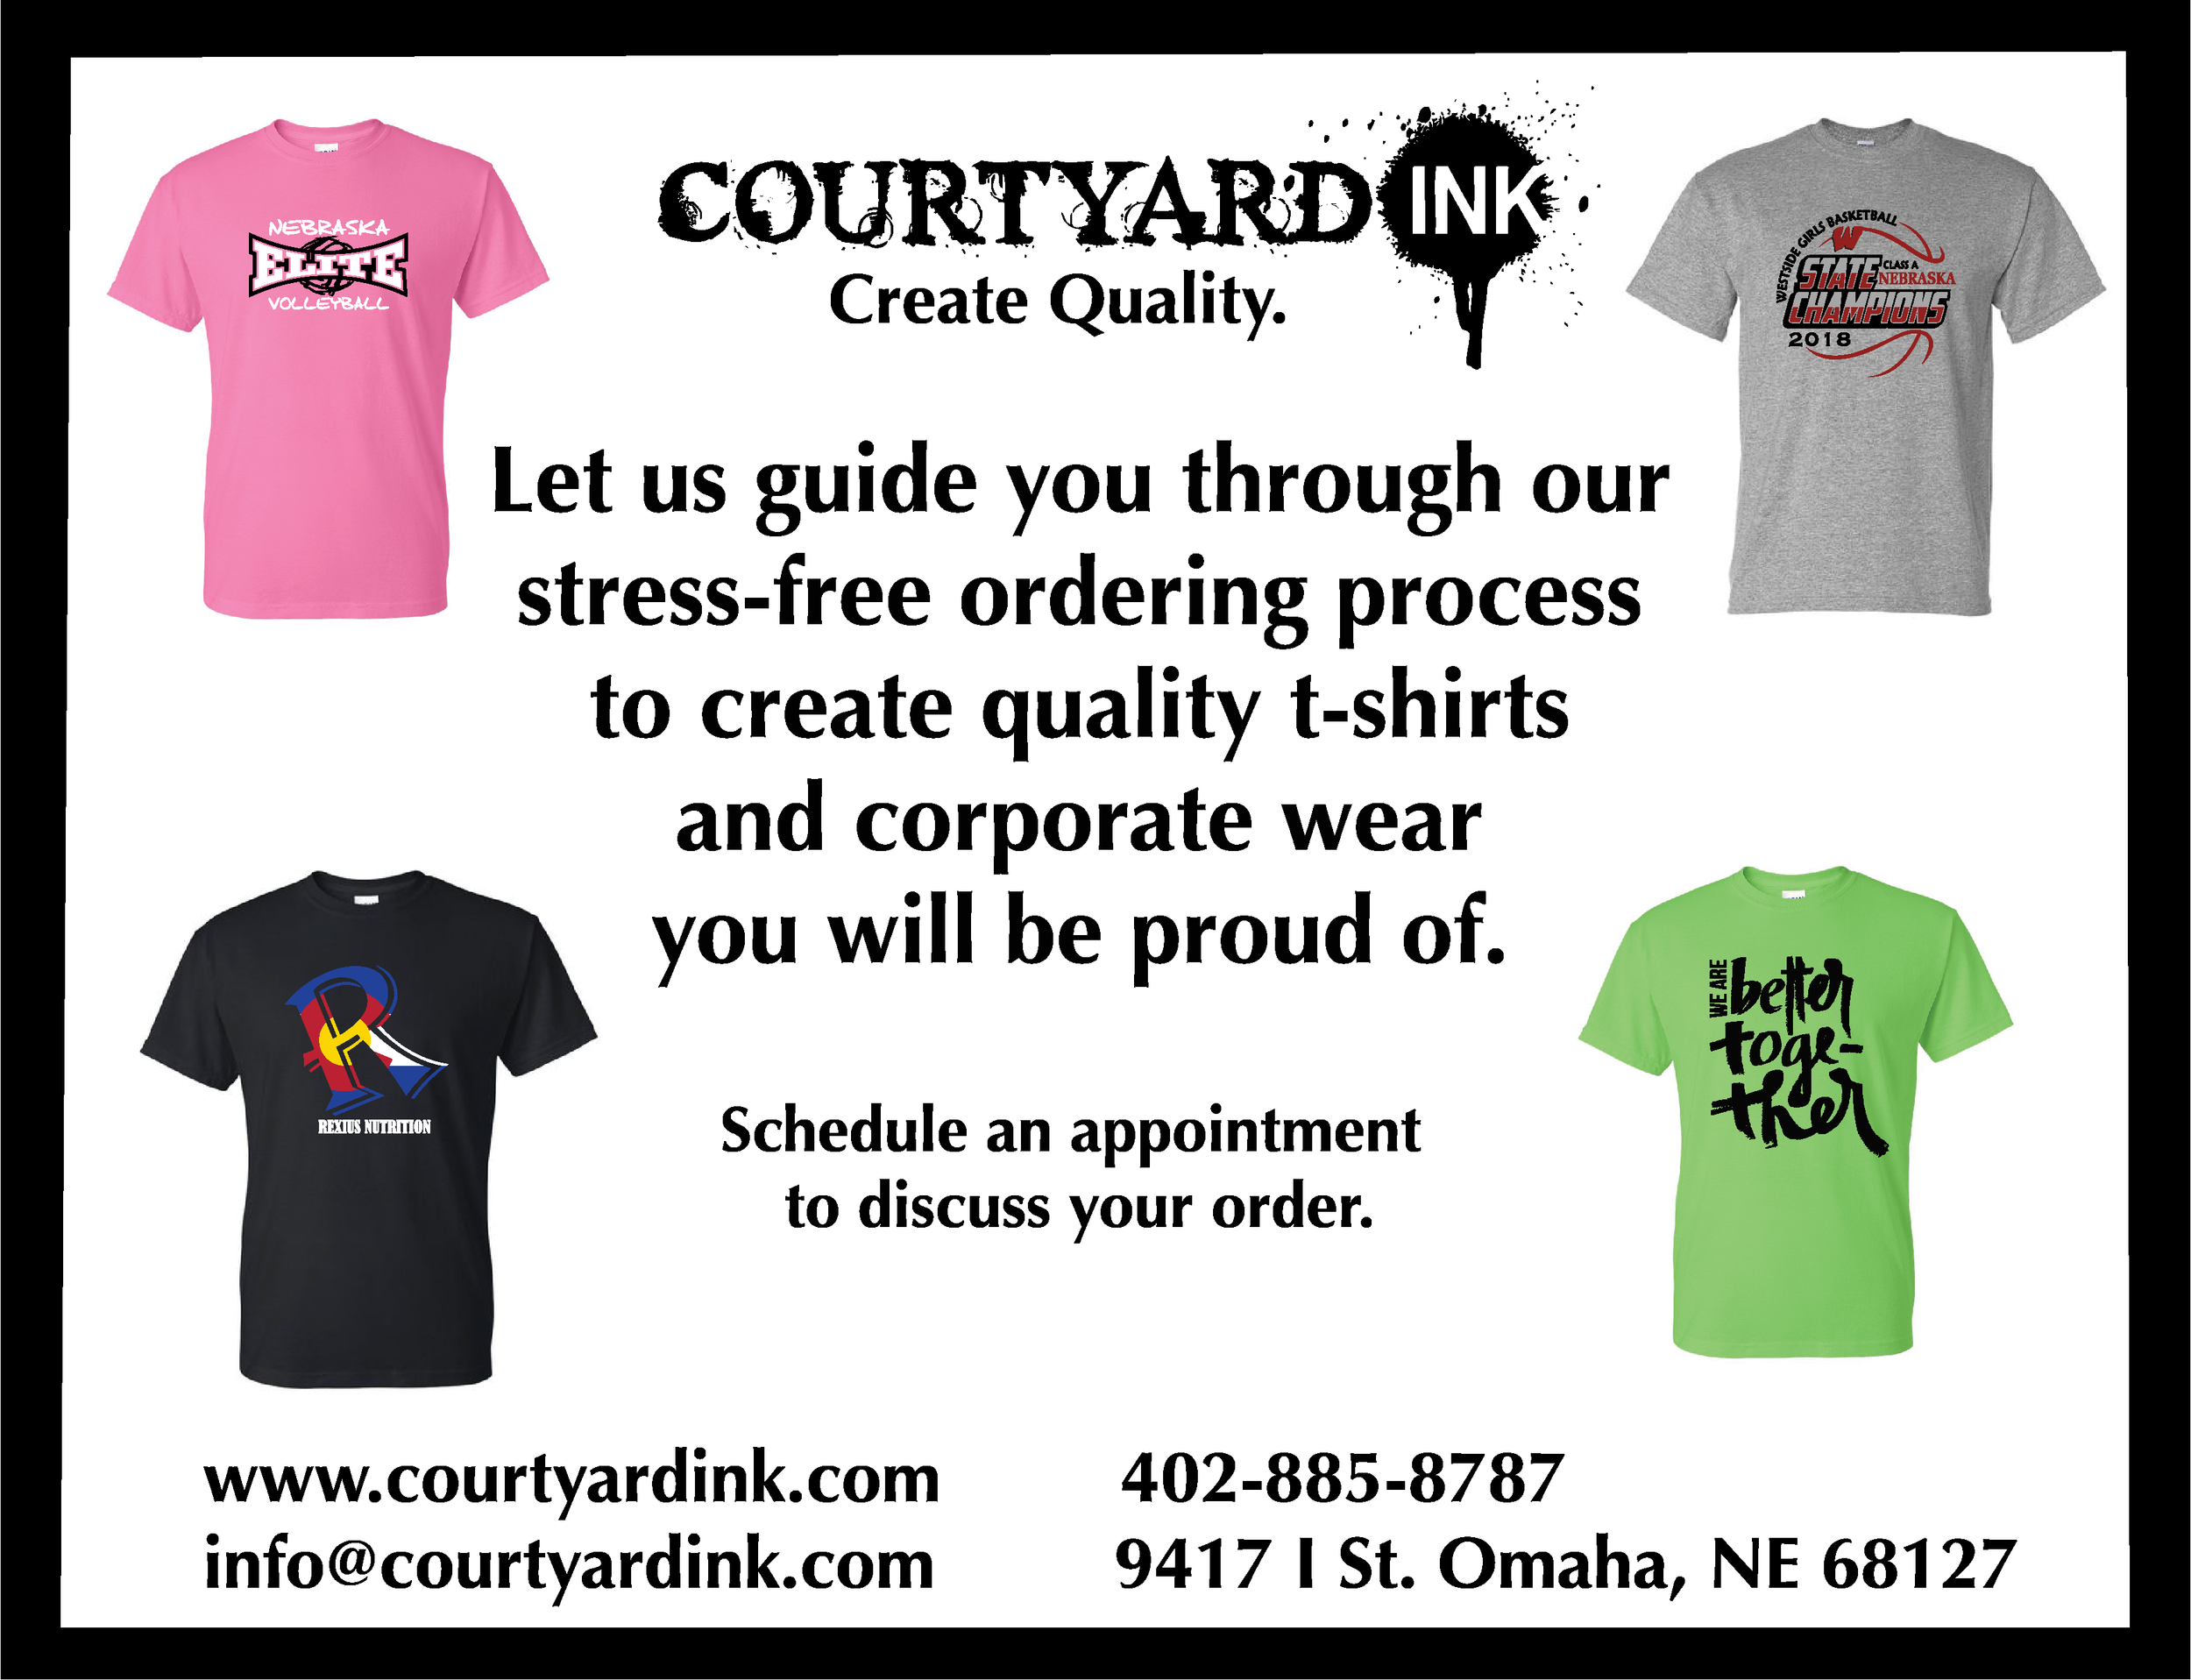 e2b4f24a Courtyard Ink - Create Quality Custom Apparel